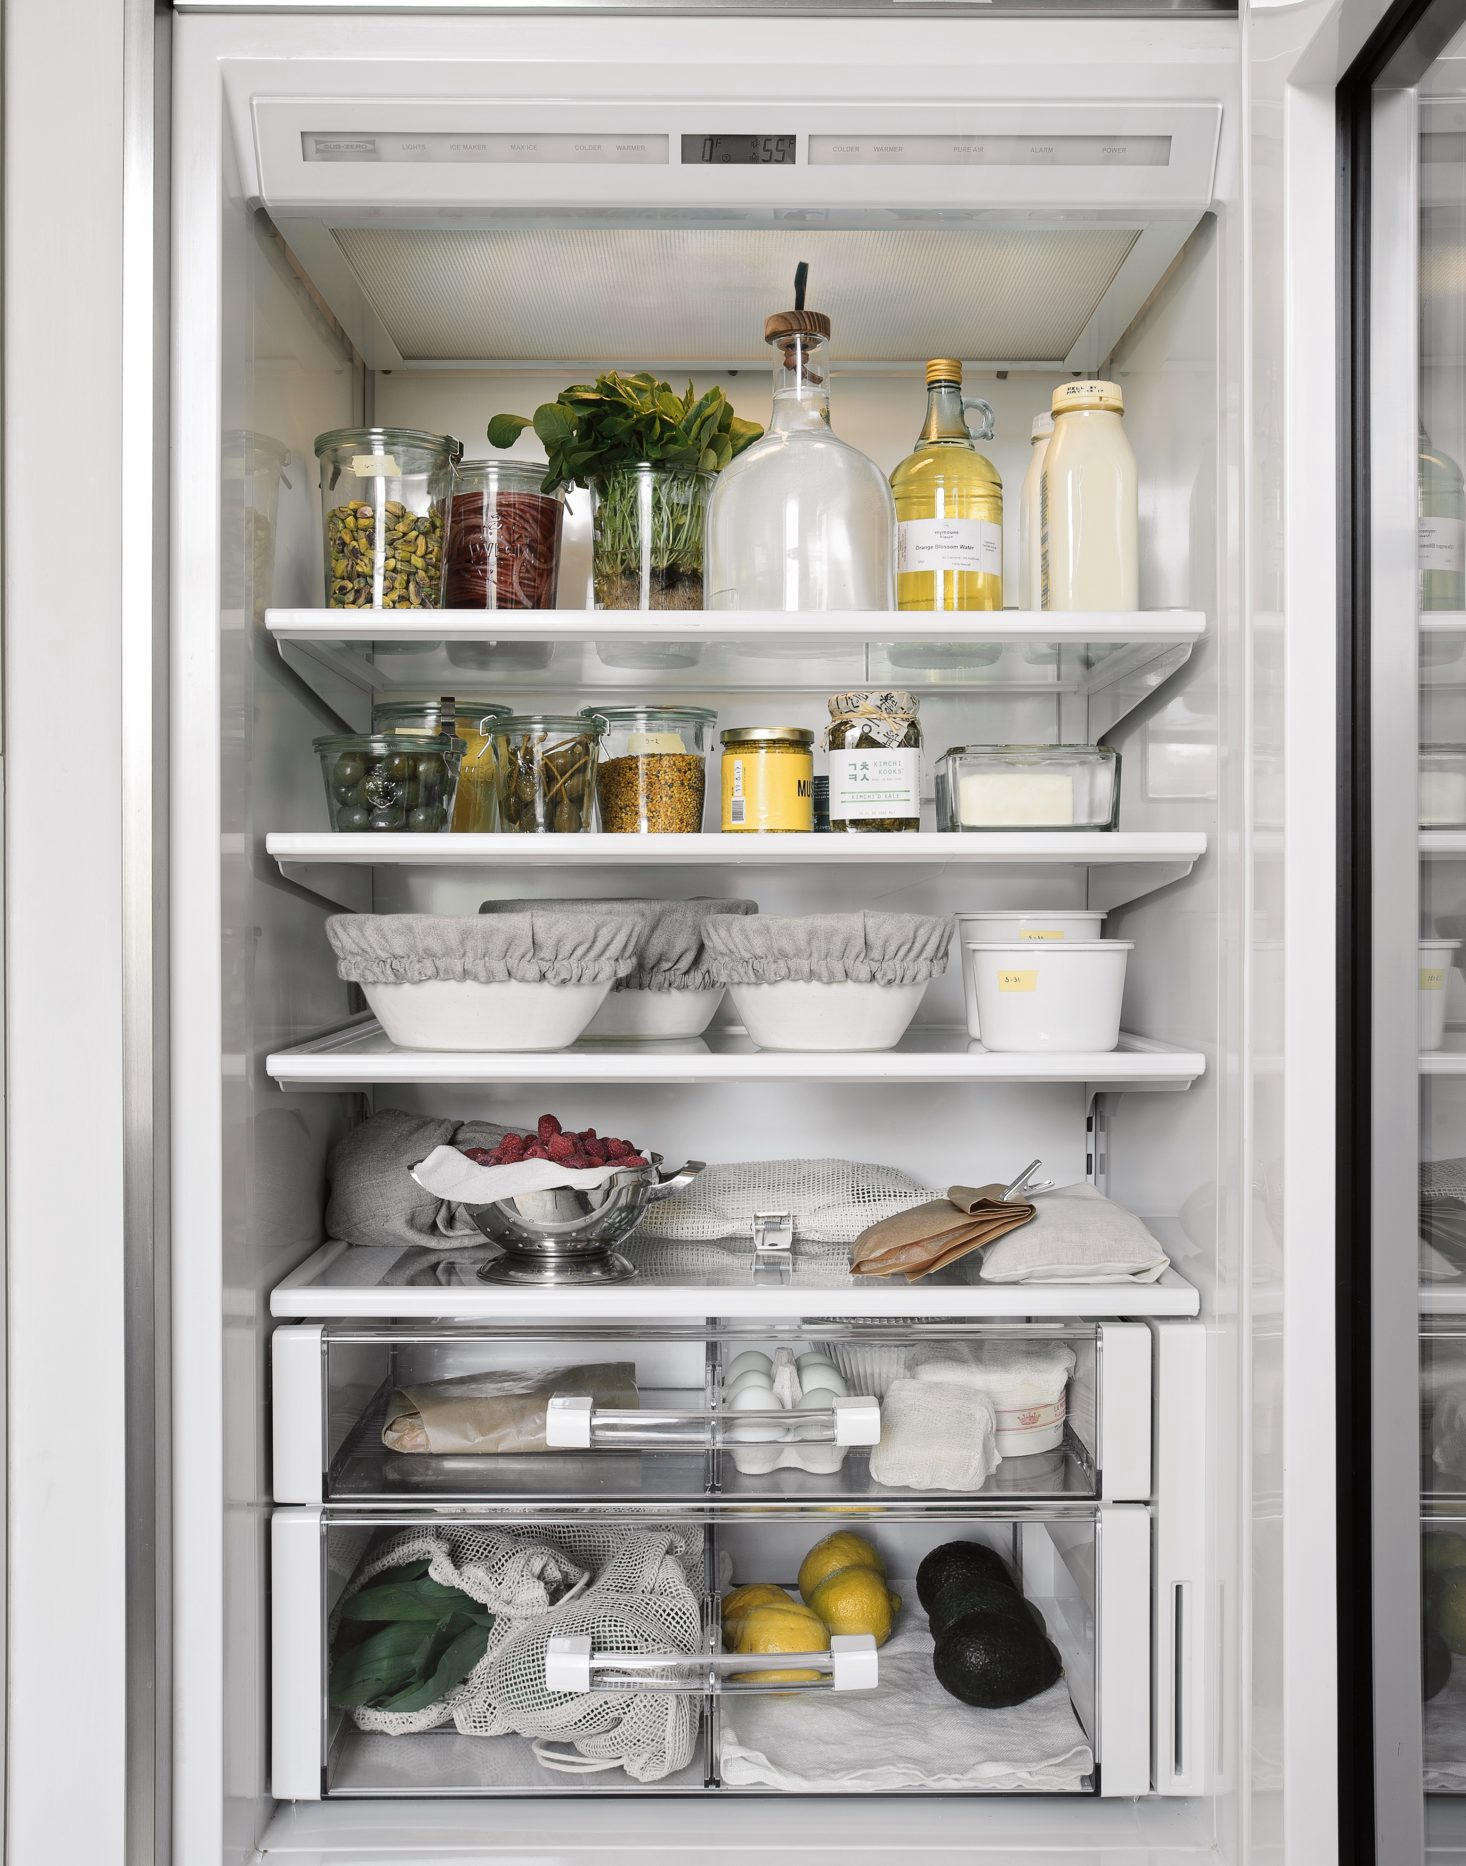 Who knew your refrigerator could be a source of aesthetic inspiration? In Steal This Look: An Organized Refrigerator, Plastic-Free Edition, the editors break down how to achieve plastic-free paradise, plus a few favorite sources for storage containers. Photograph by Matthew Williams forRemodelista: The Organized Home.